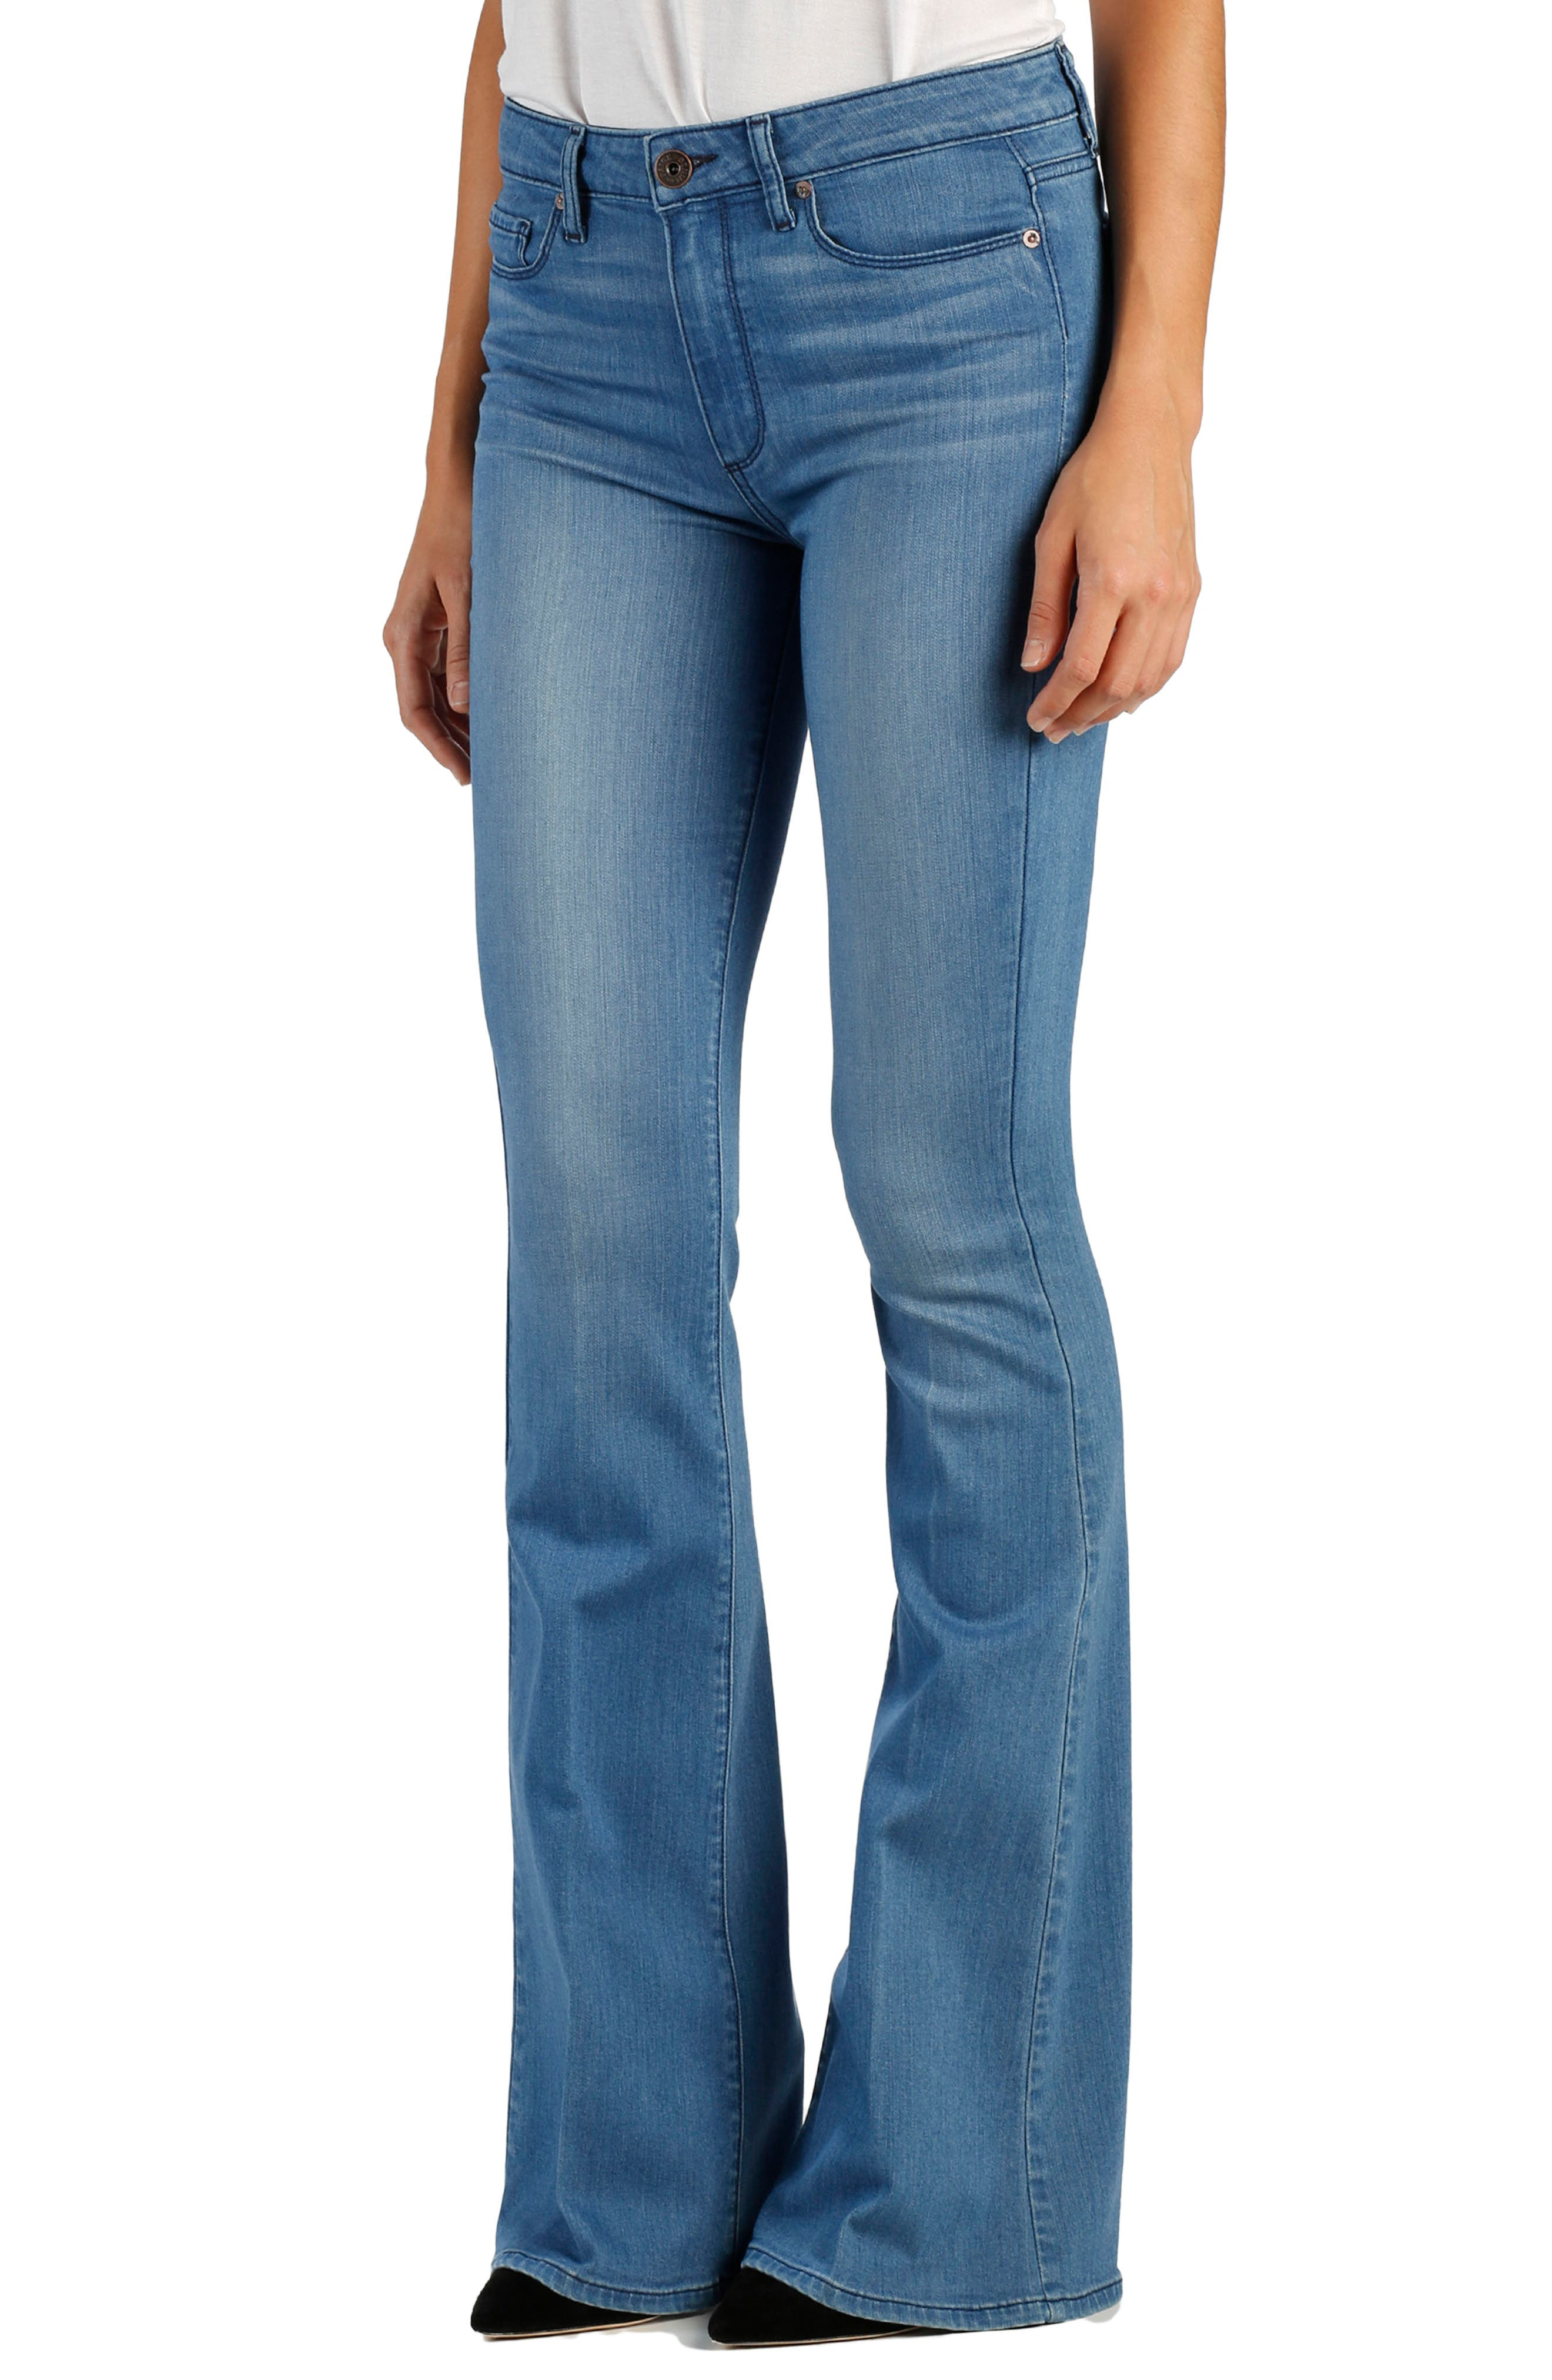 Transcend - Bell Canyon High Waist Flare Jeans,                         Main,                         color, Harbor